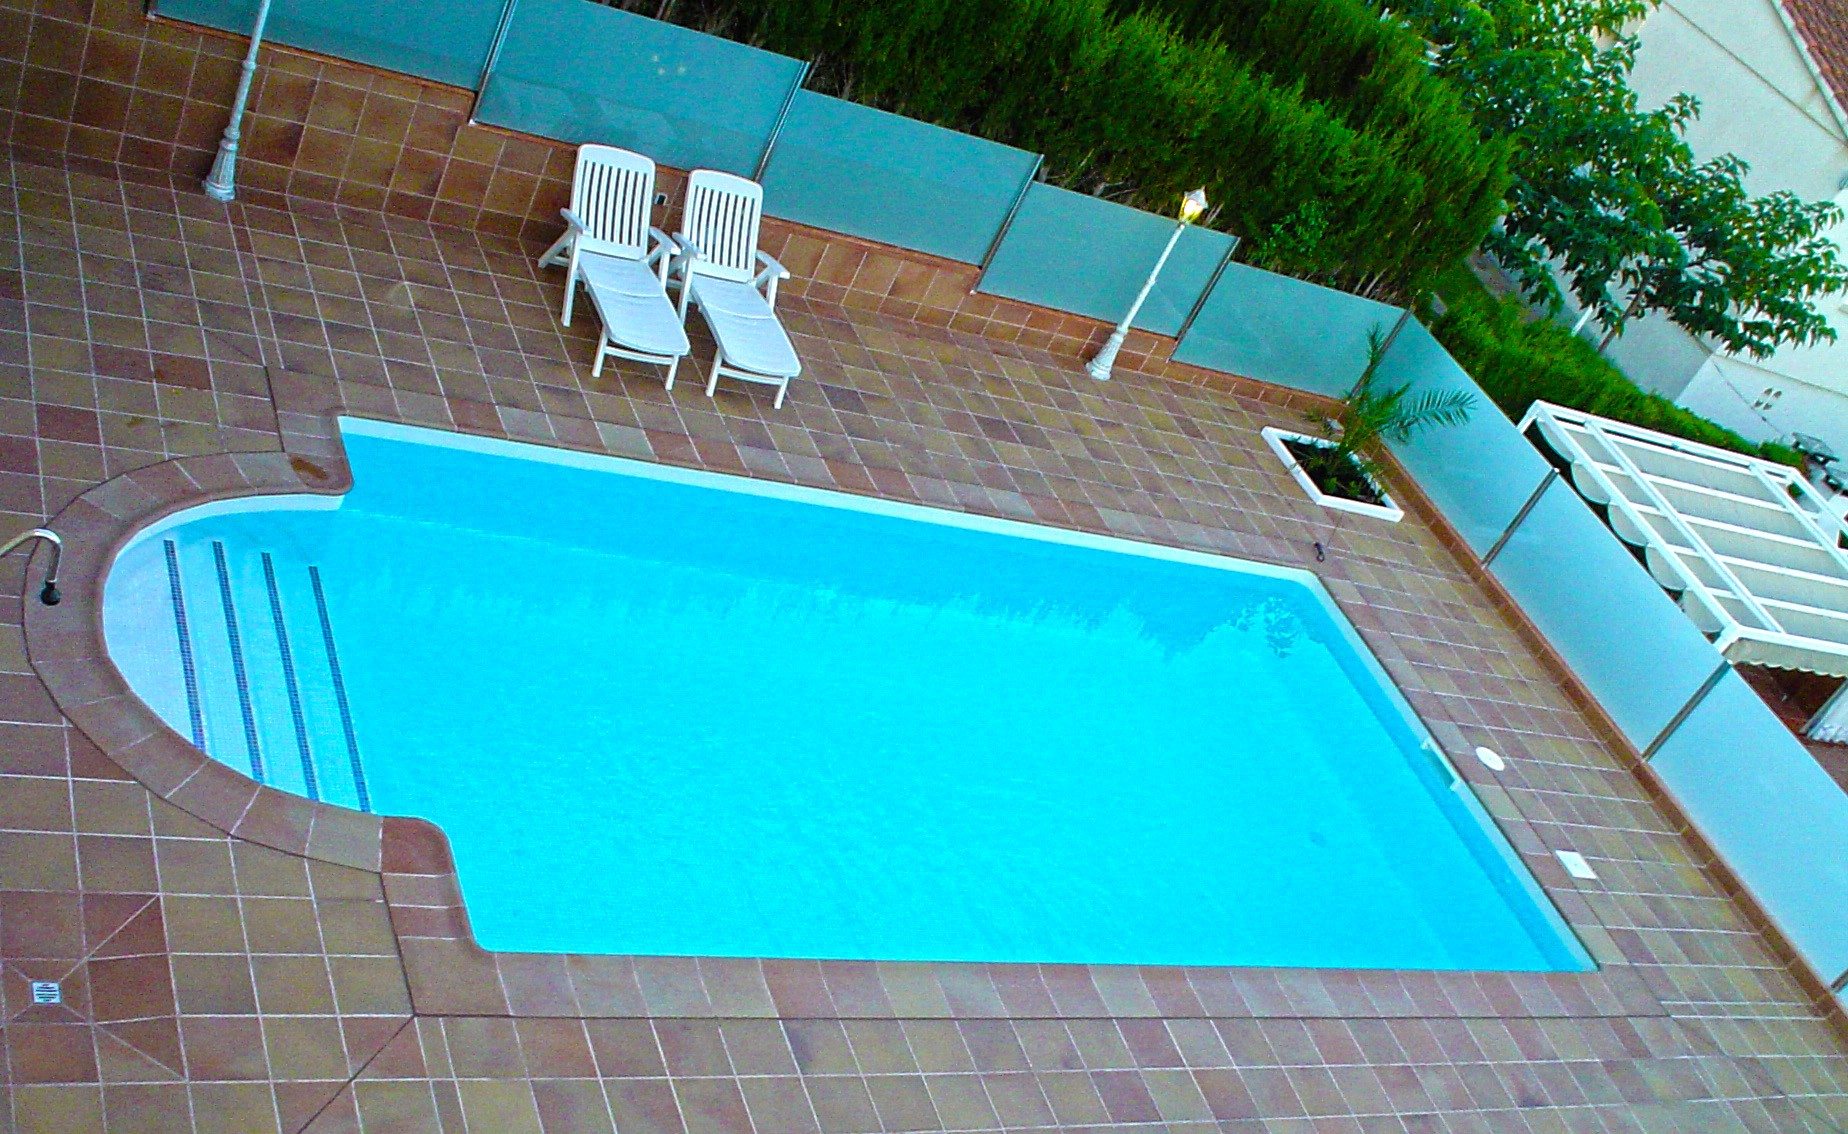 Piscinas obra precios amazing piscina with piscinas obra for Ver piscinas de obra